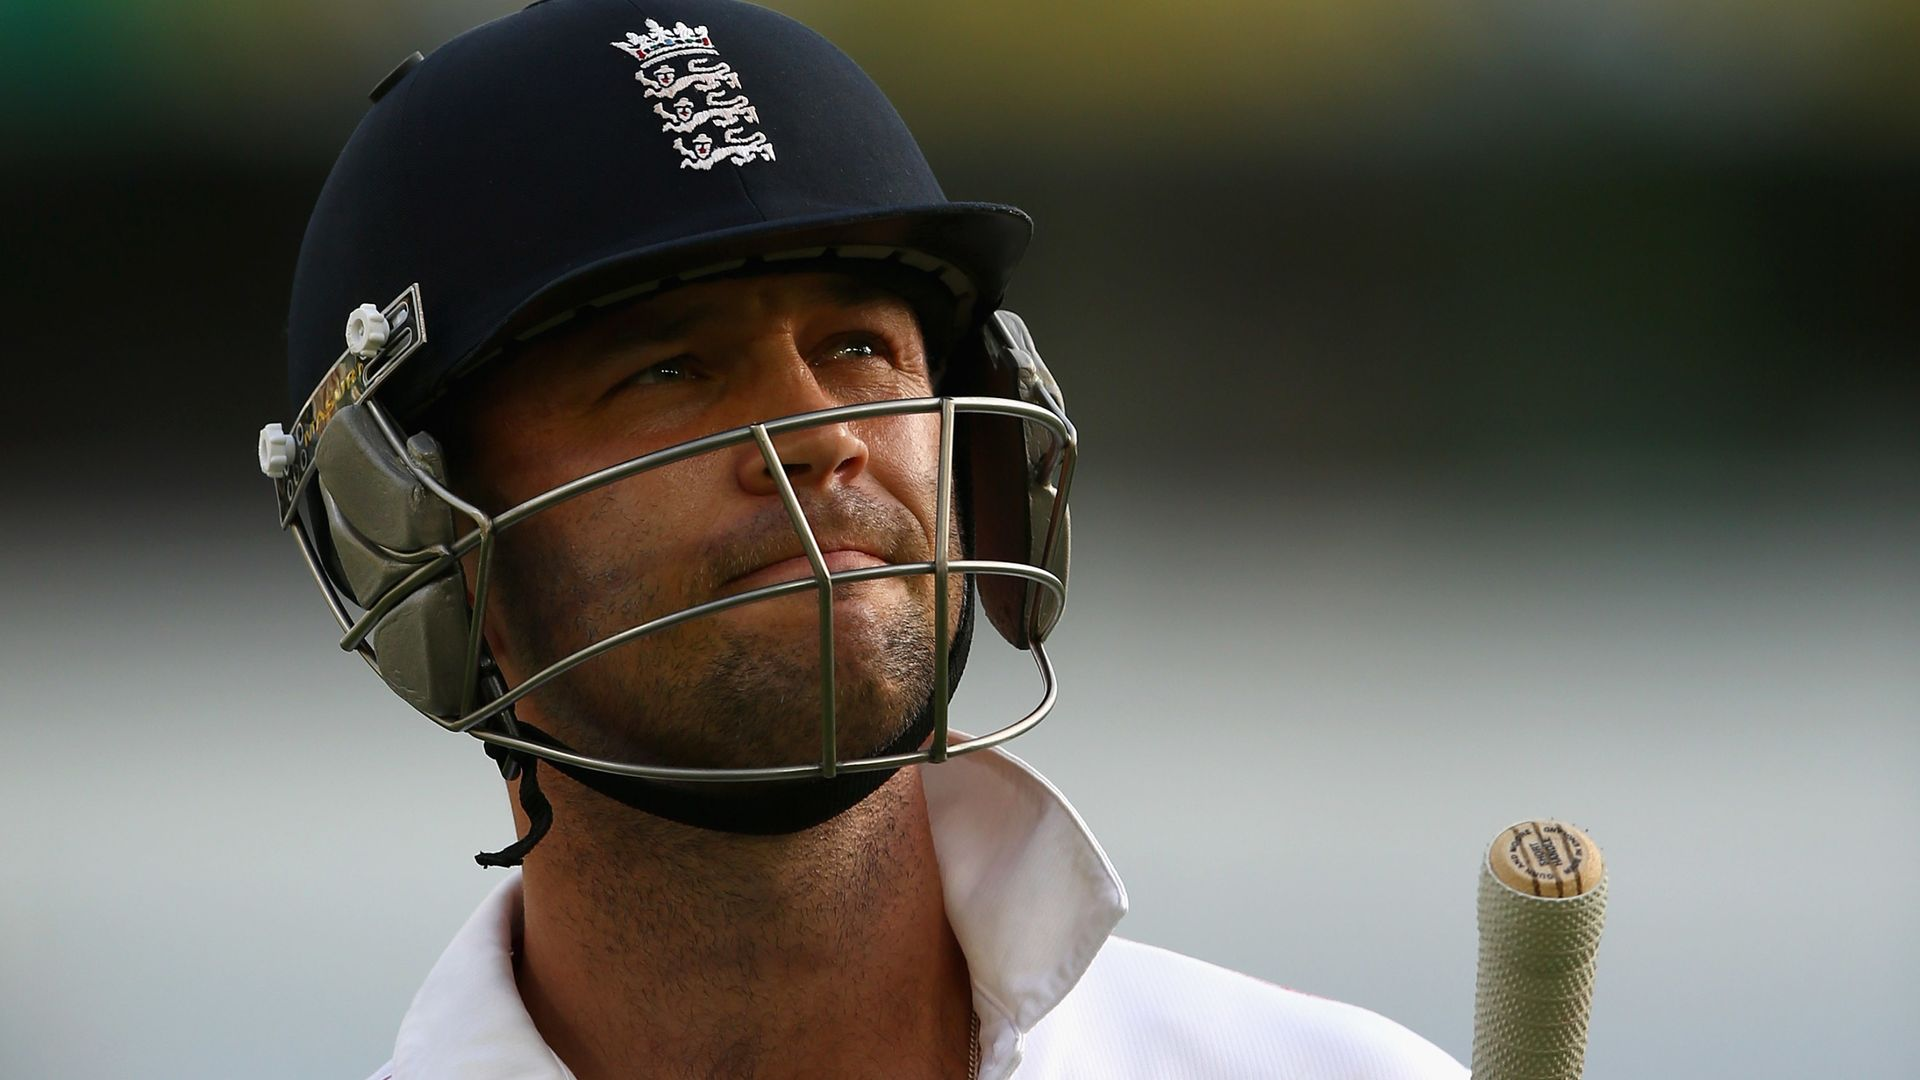 Trott: Cricket filled me with dread